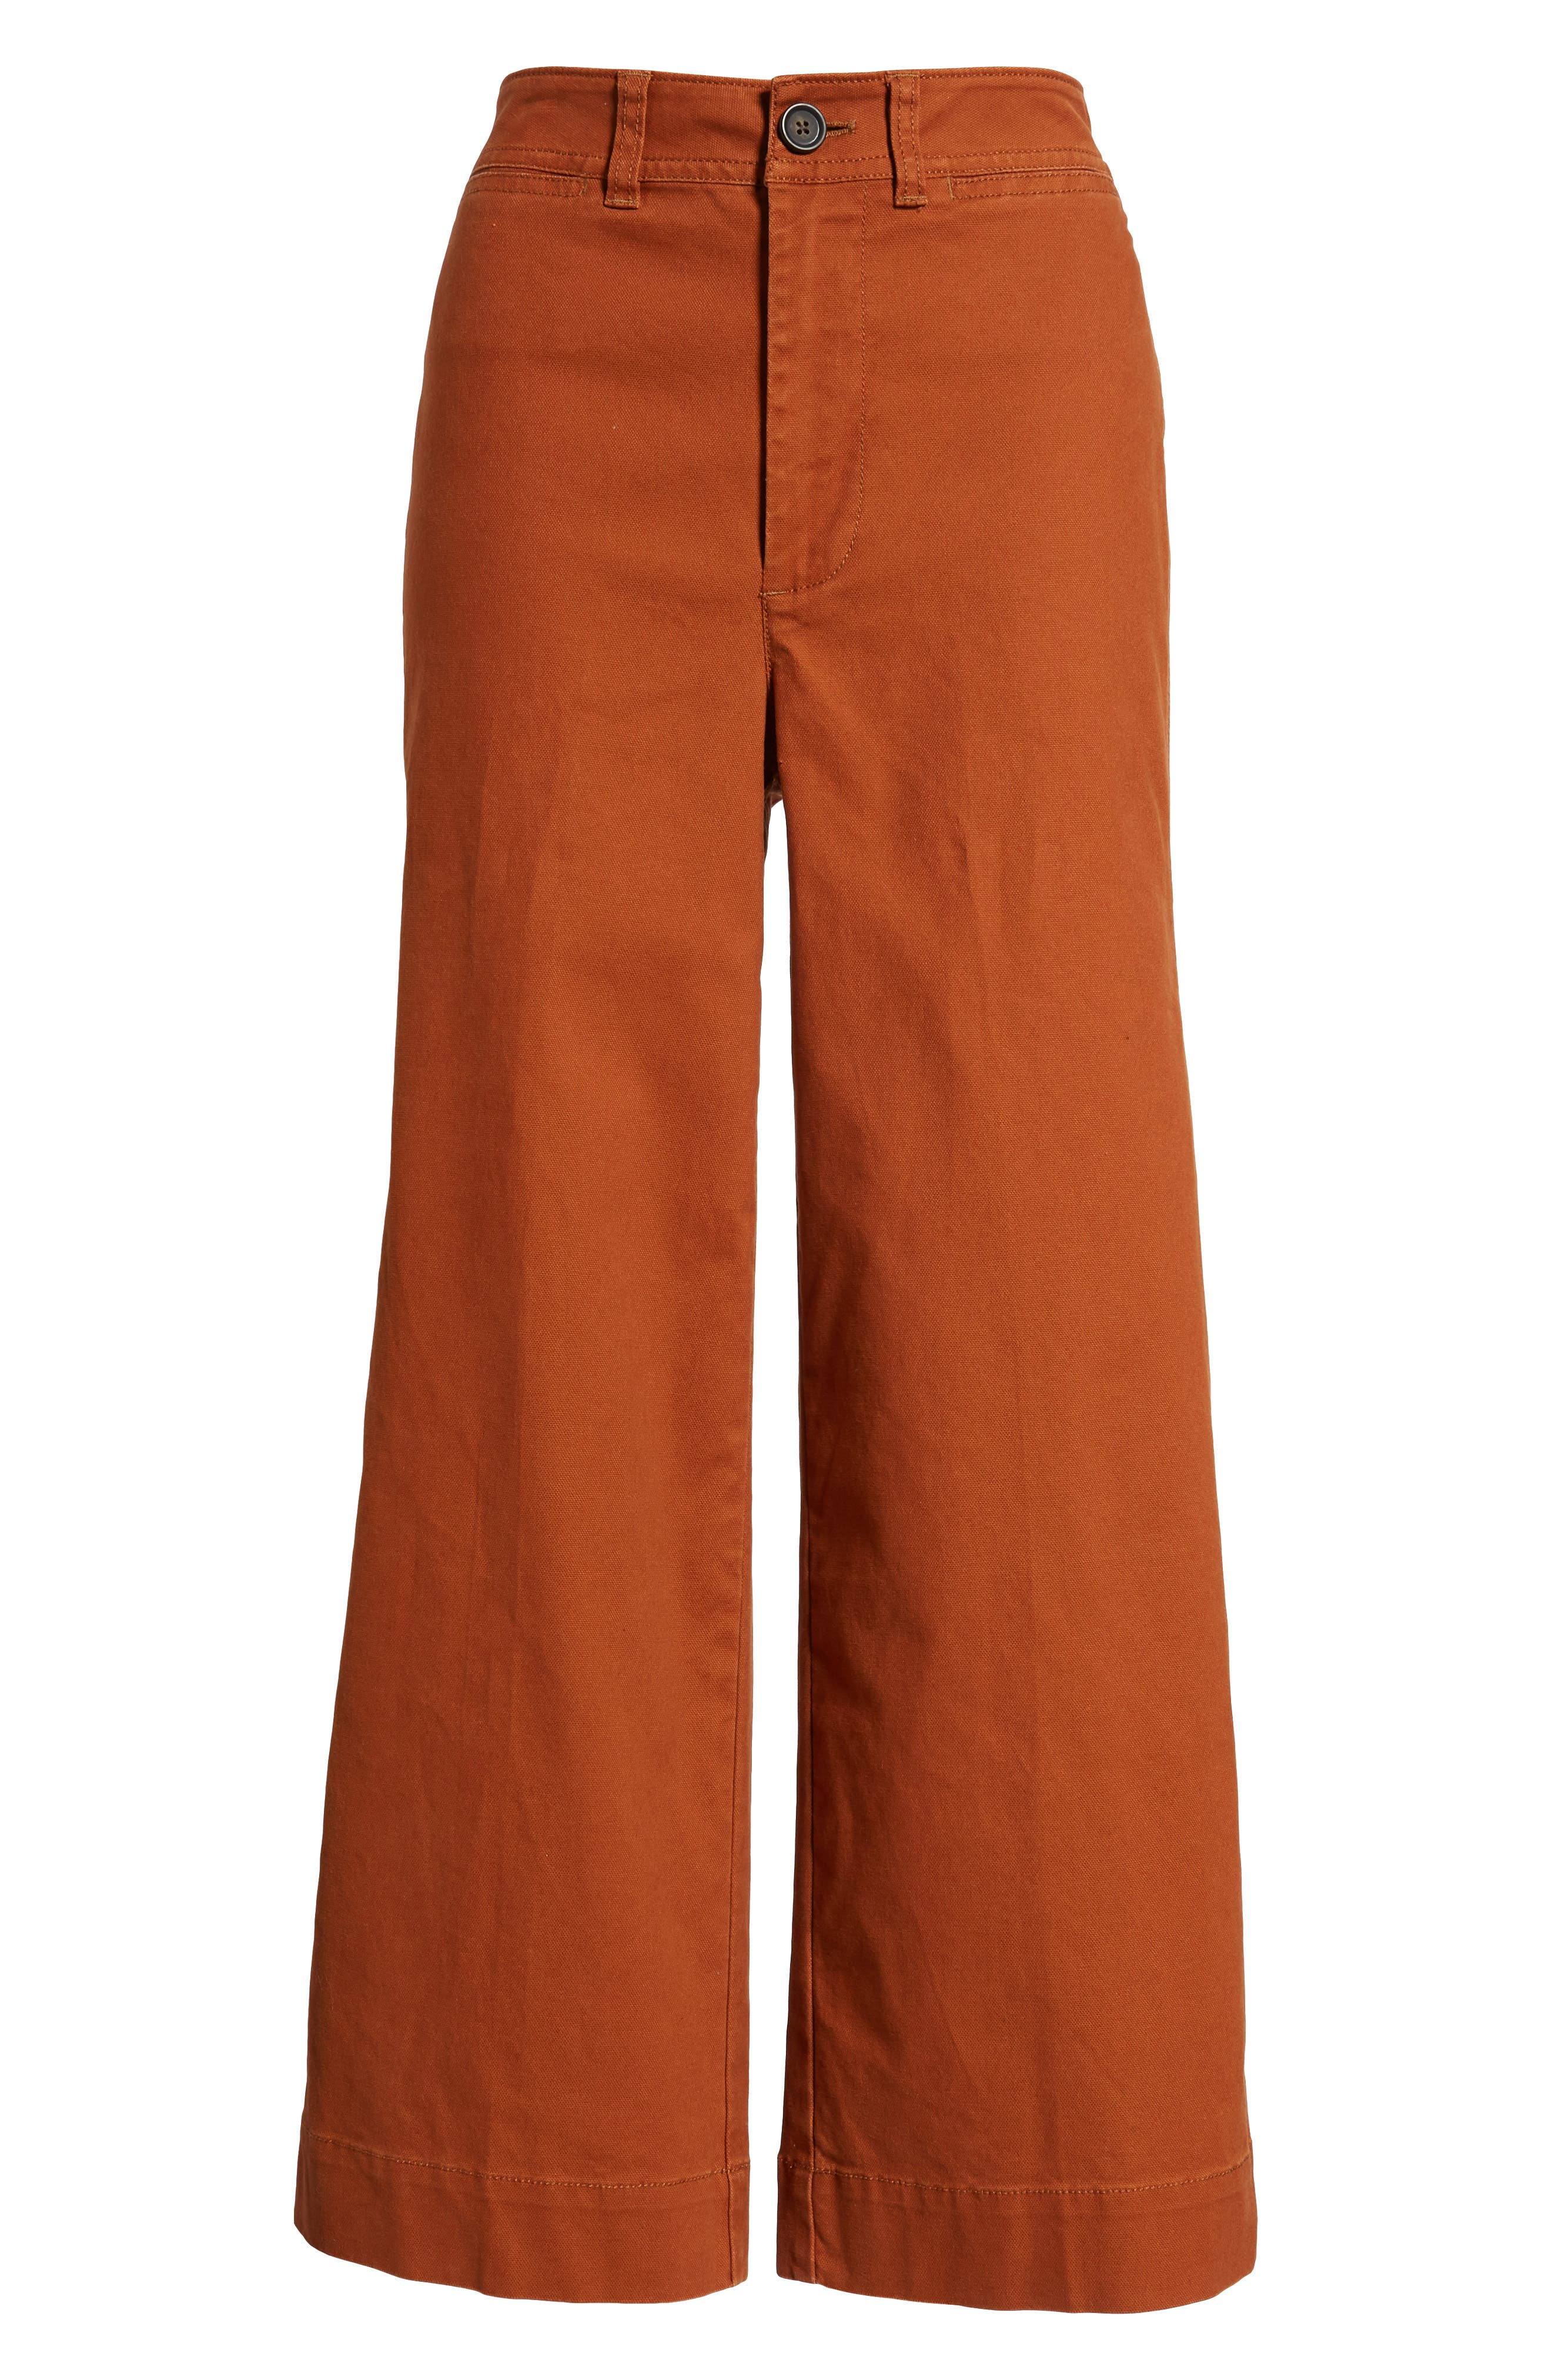 Emmett Crop Wide Leg Pants,                             Alternate thumbnail 19, color,